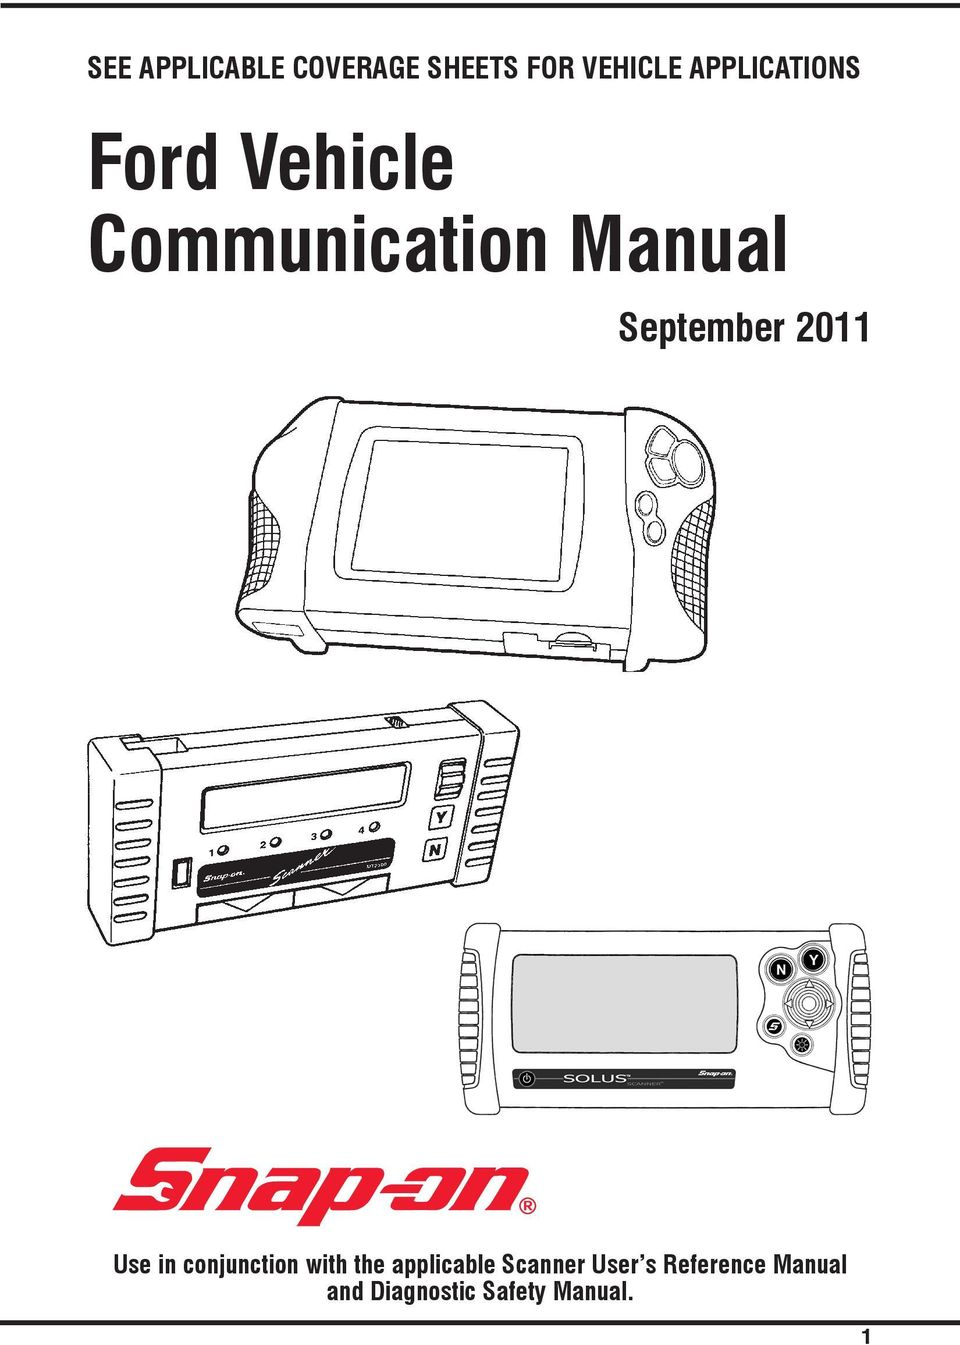 Ford Vehicle Communication Manual - PDF